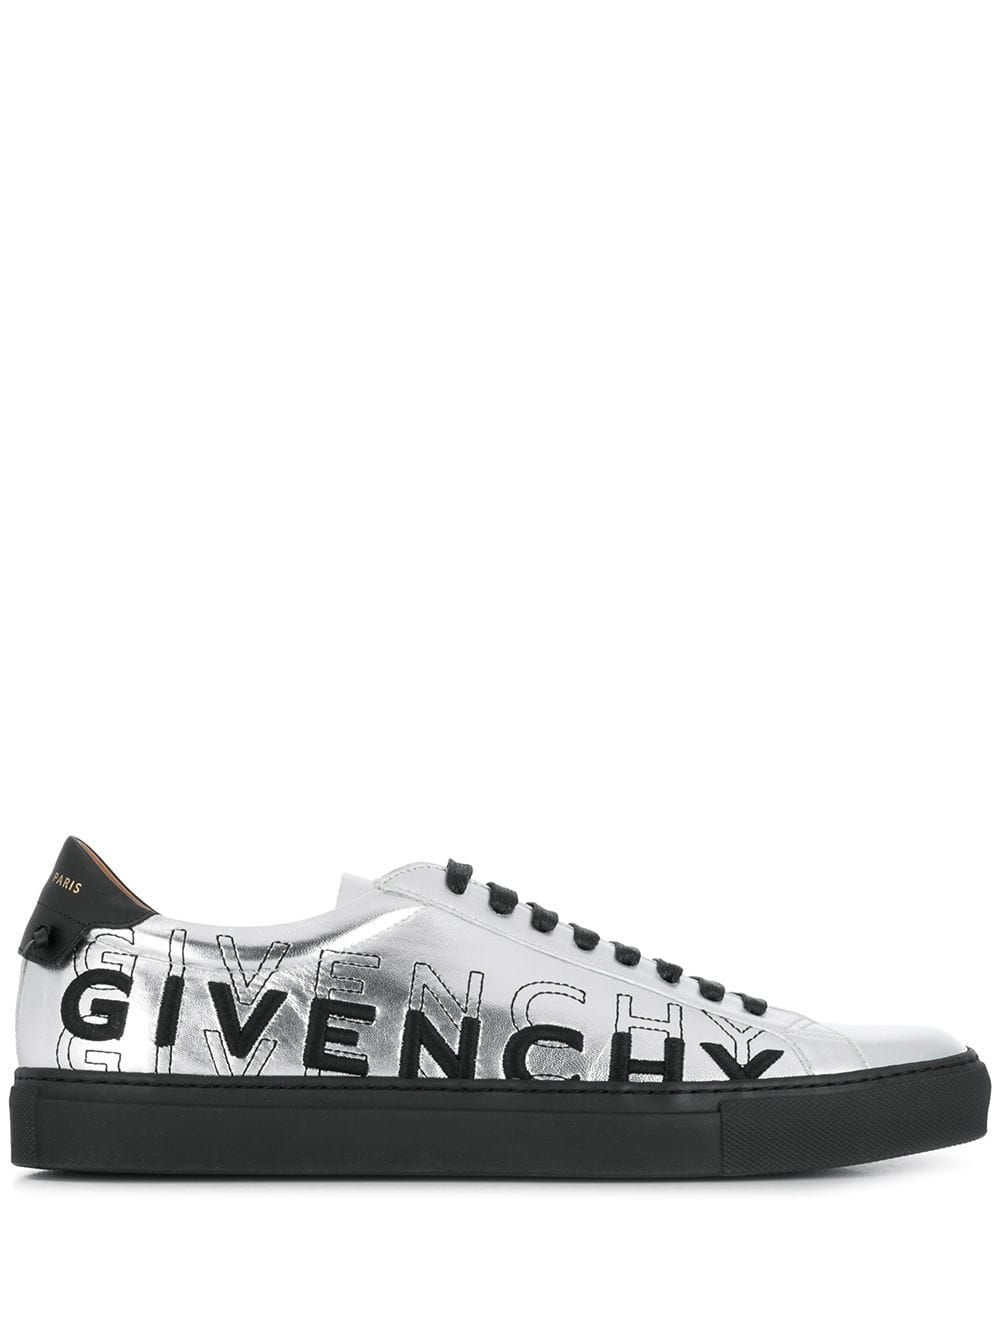 Givenchy Lace Up Sneakers - Farfetch